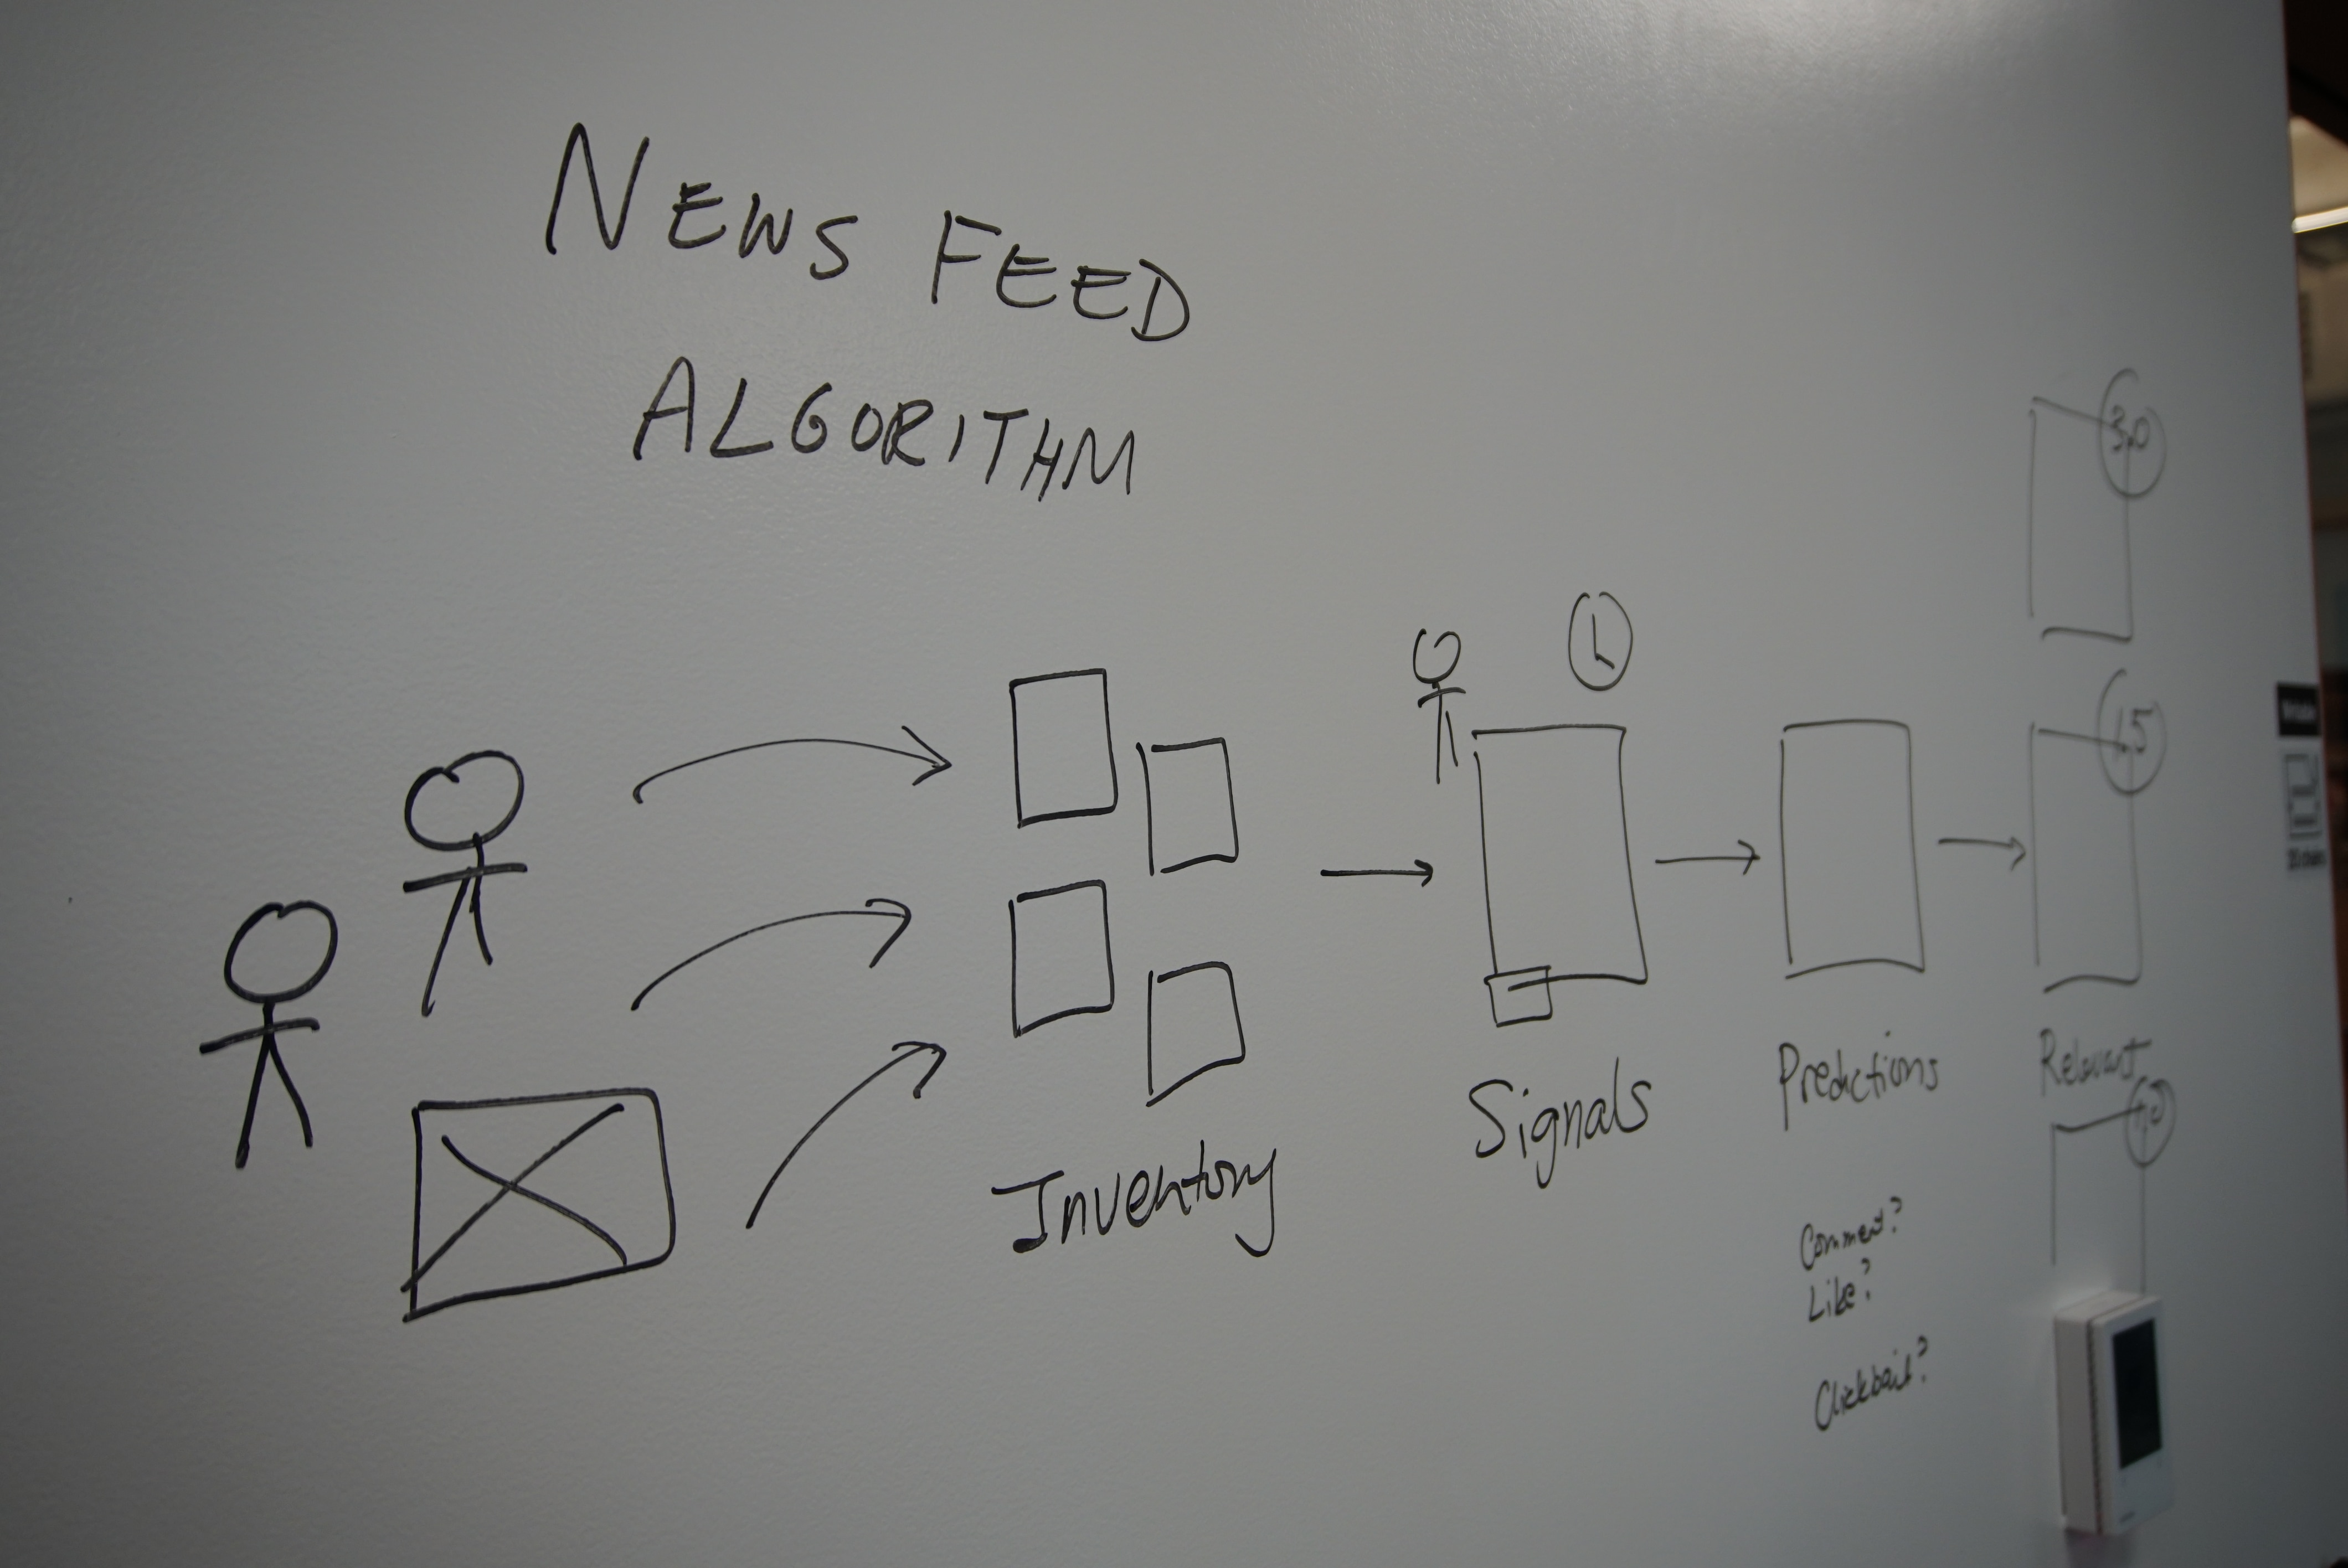 How Facebook's news feed works.